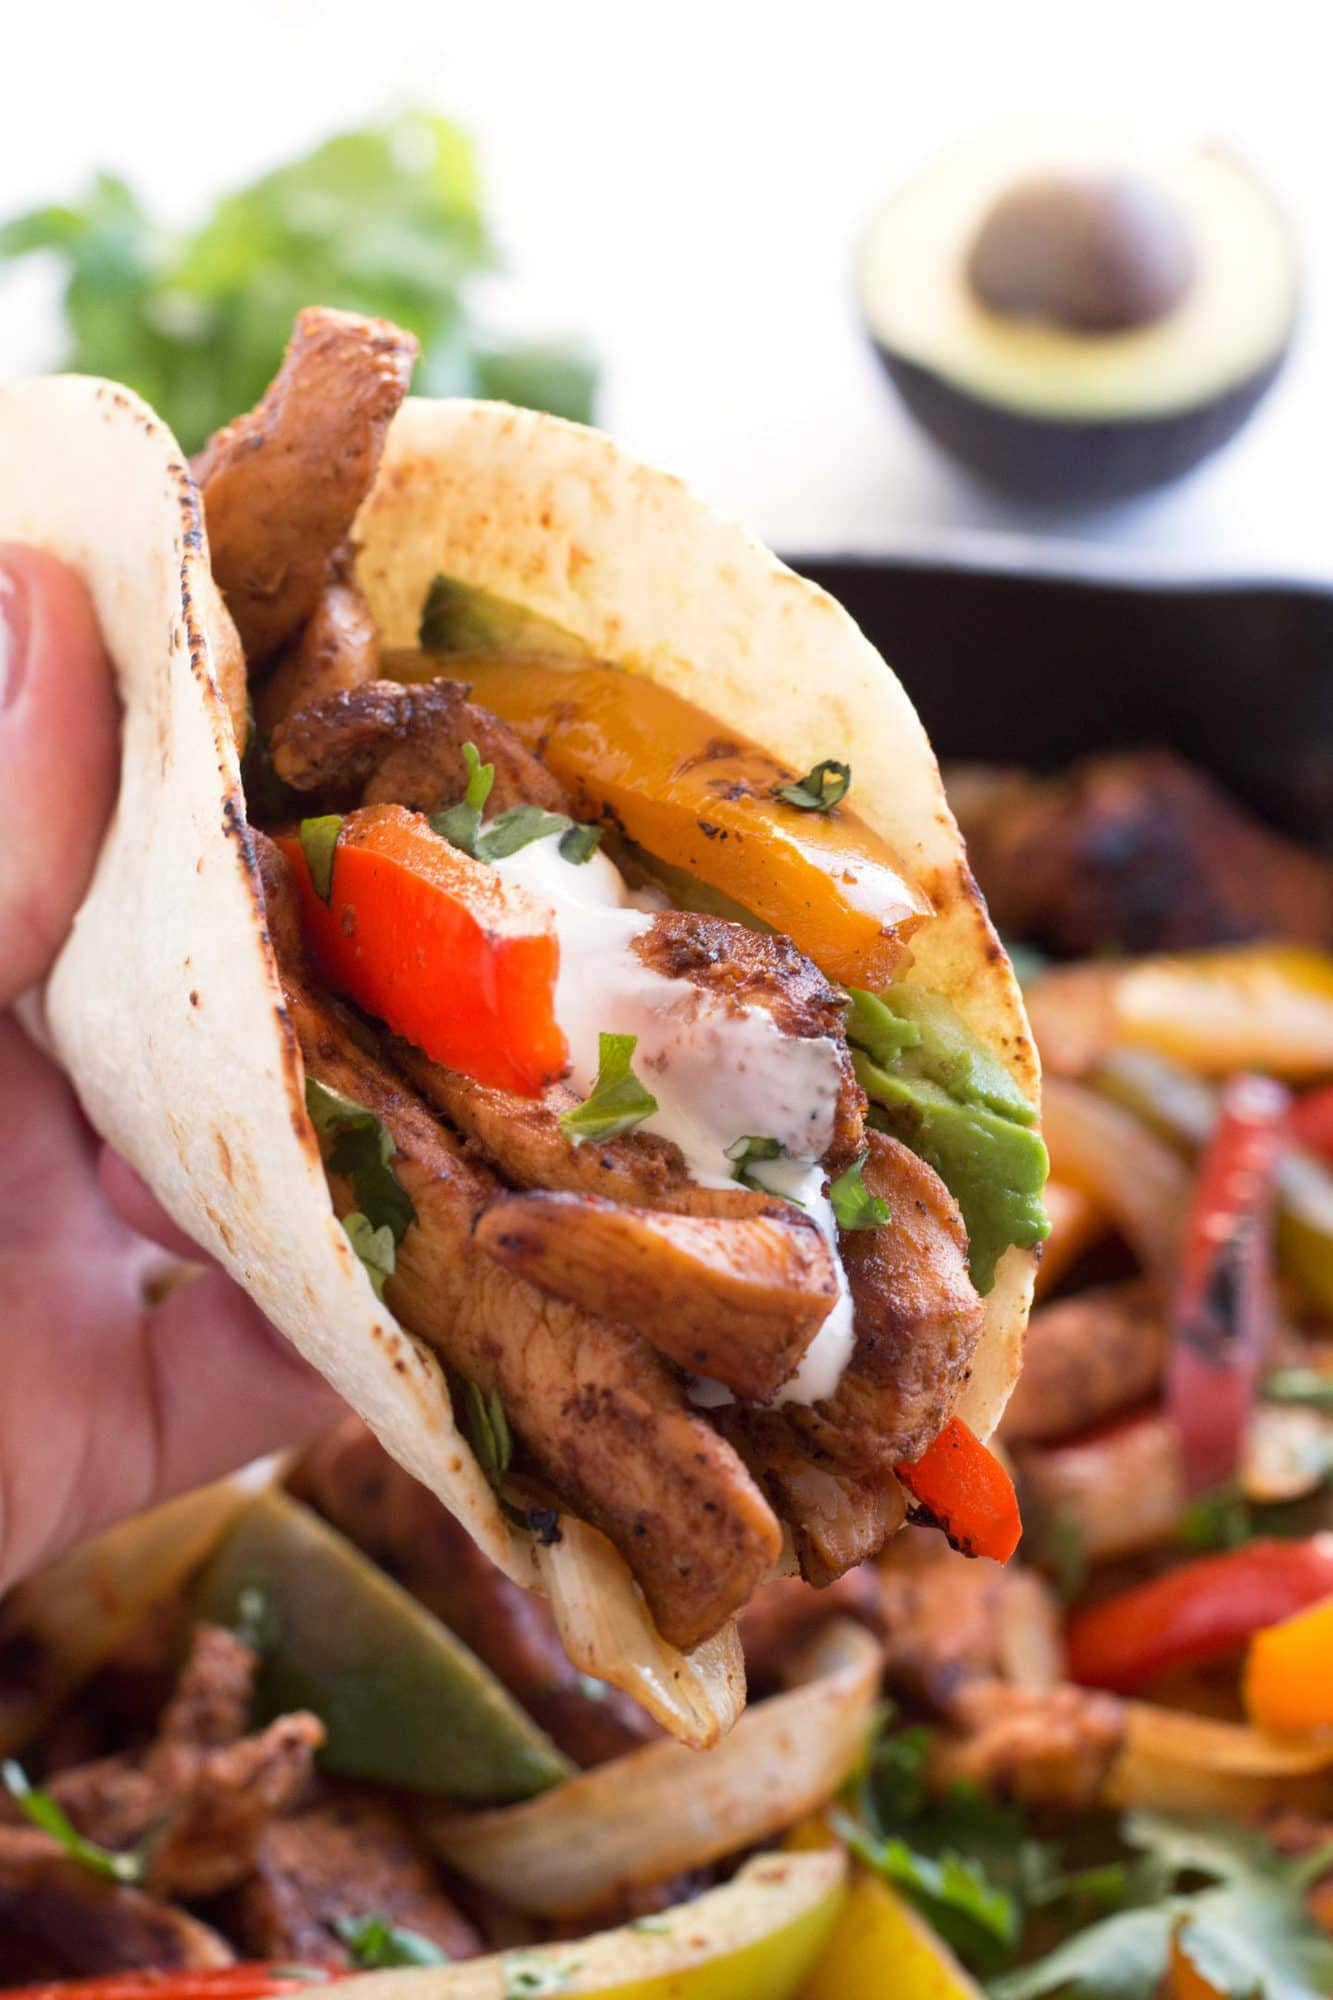 Hand holding chicken fajitas wrapped in a tortilla.